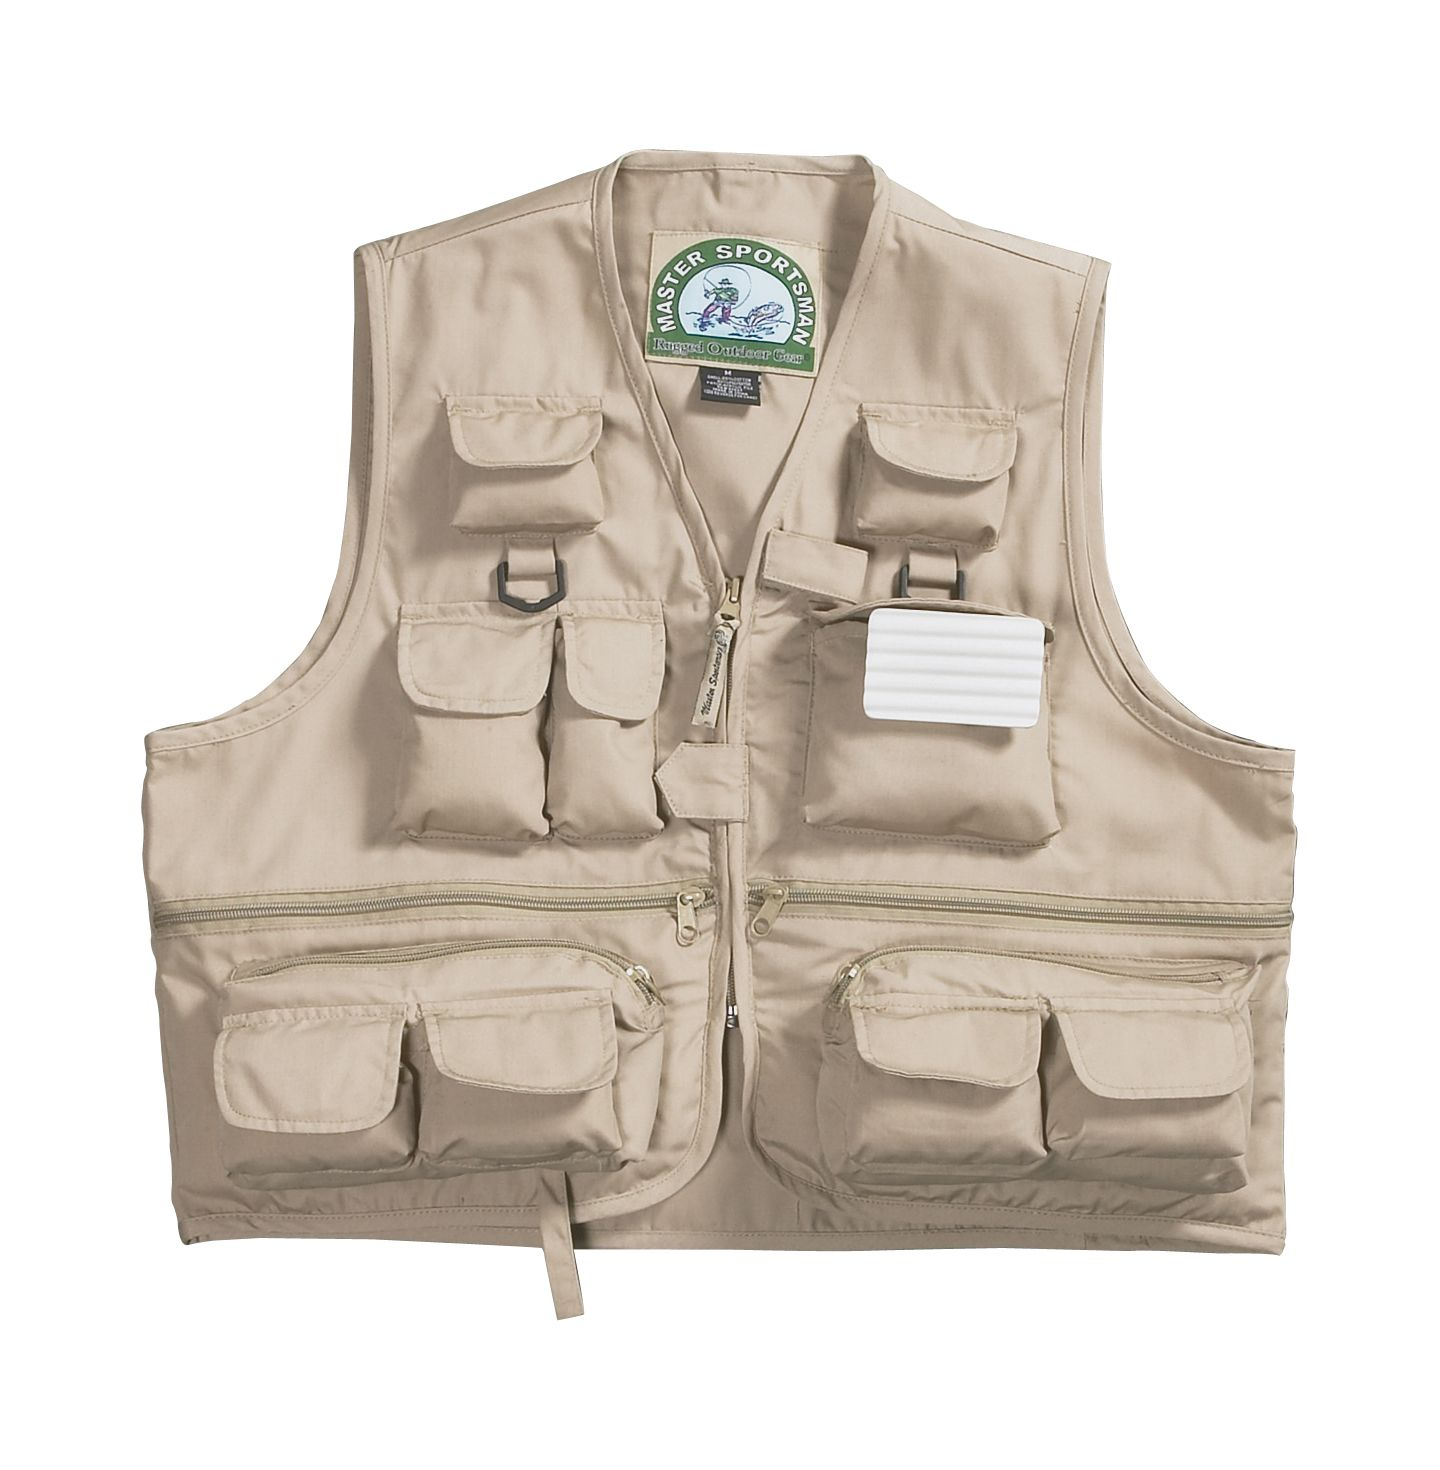 Master sportsman pocket fishing vest field stream for Field and stream fishing shirts